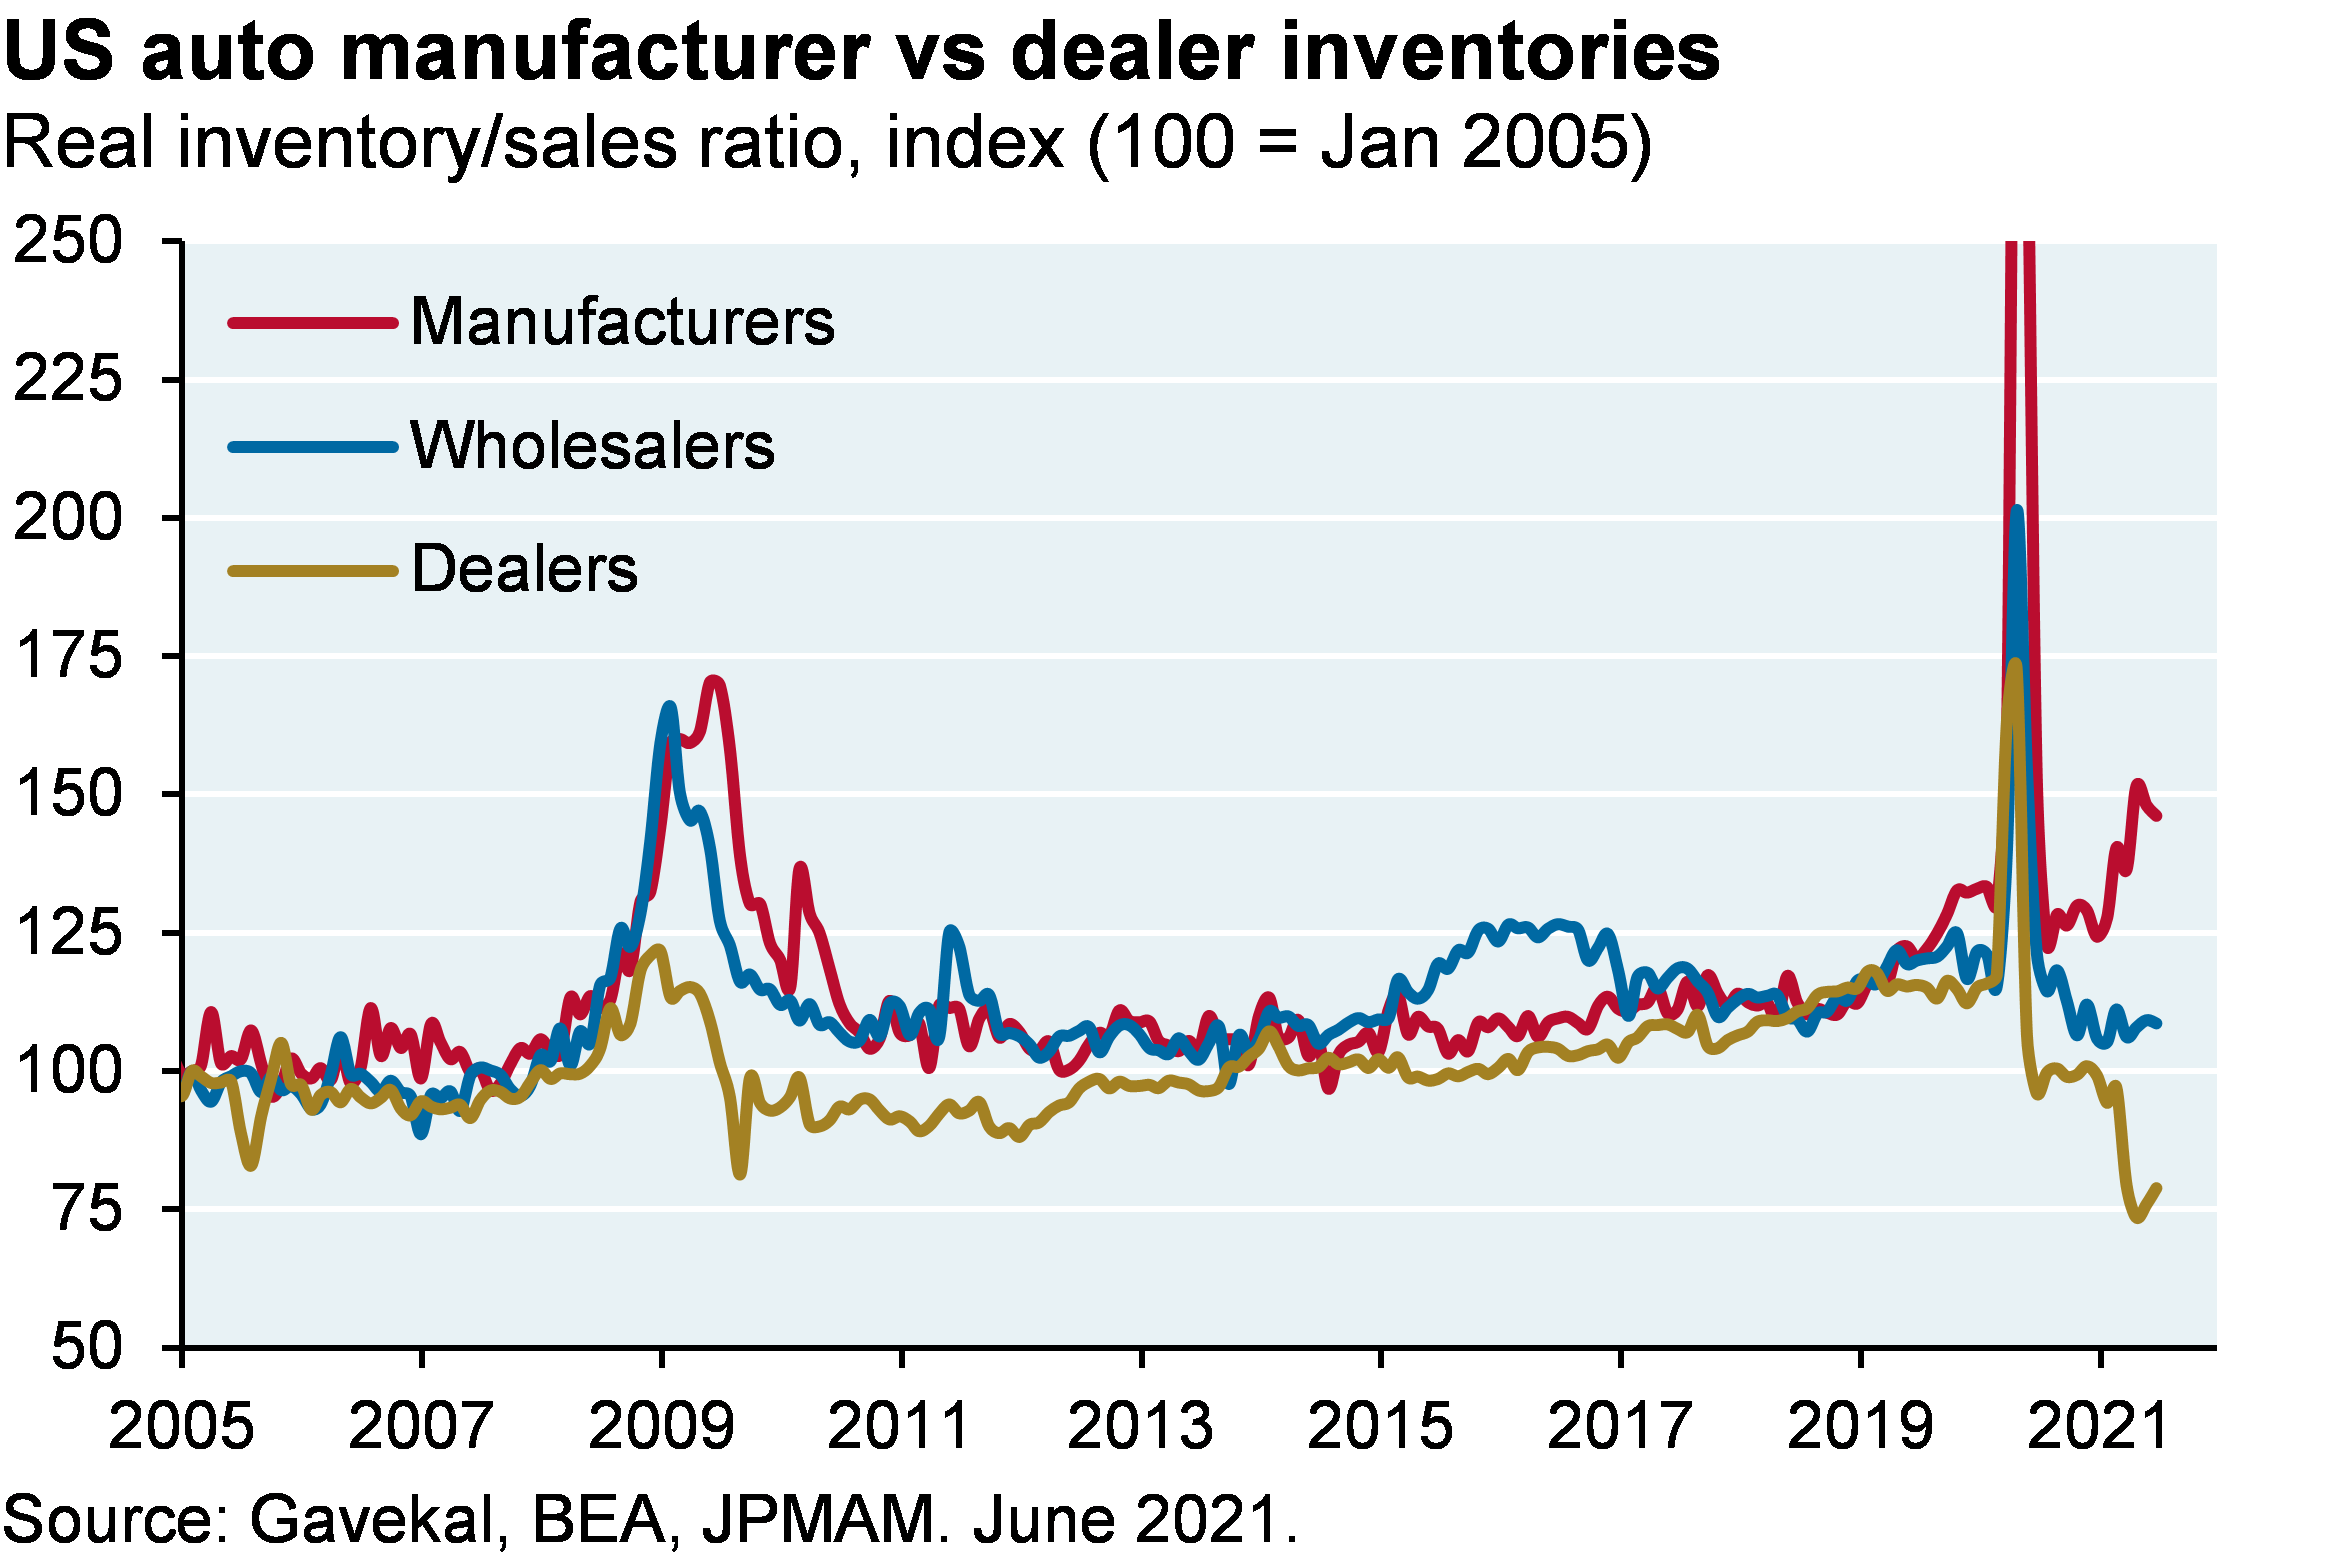 Line chart shows inventory to sales ratios for US auto manufacturers, wholesalers and dealers. Automaker inventories have recently been piling up as the supply shortage continues, while wholesalers and dealer inventories have fallen.